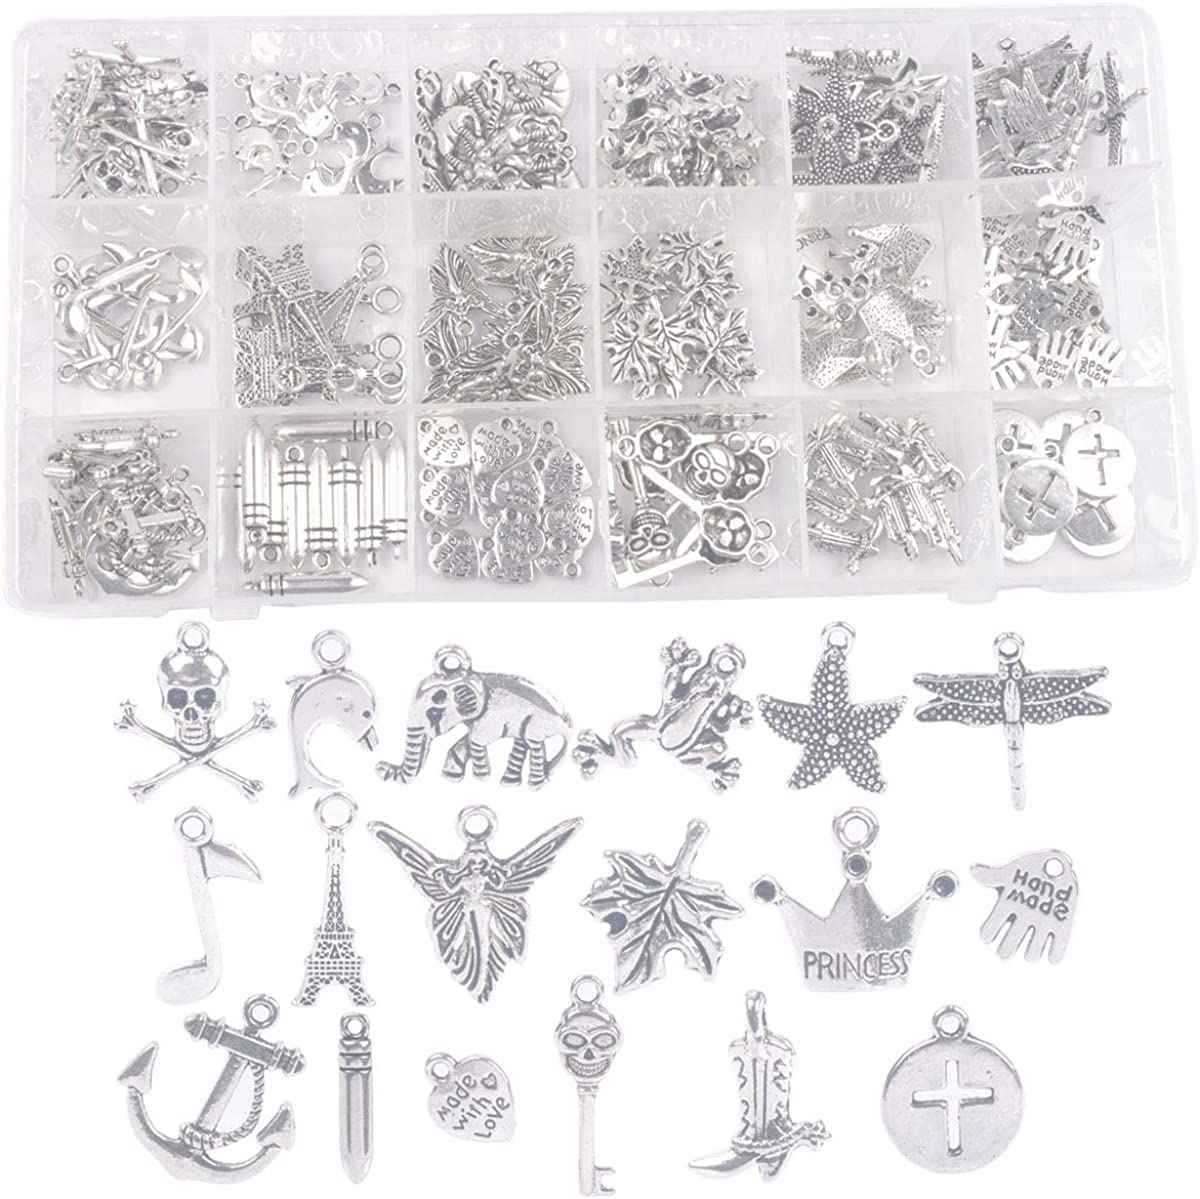 ChangJin One Box of 200PCS Assorted Antiqued Silver Metal Charms for Jewelry Making In Storage